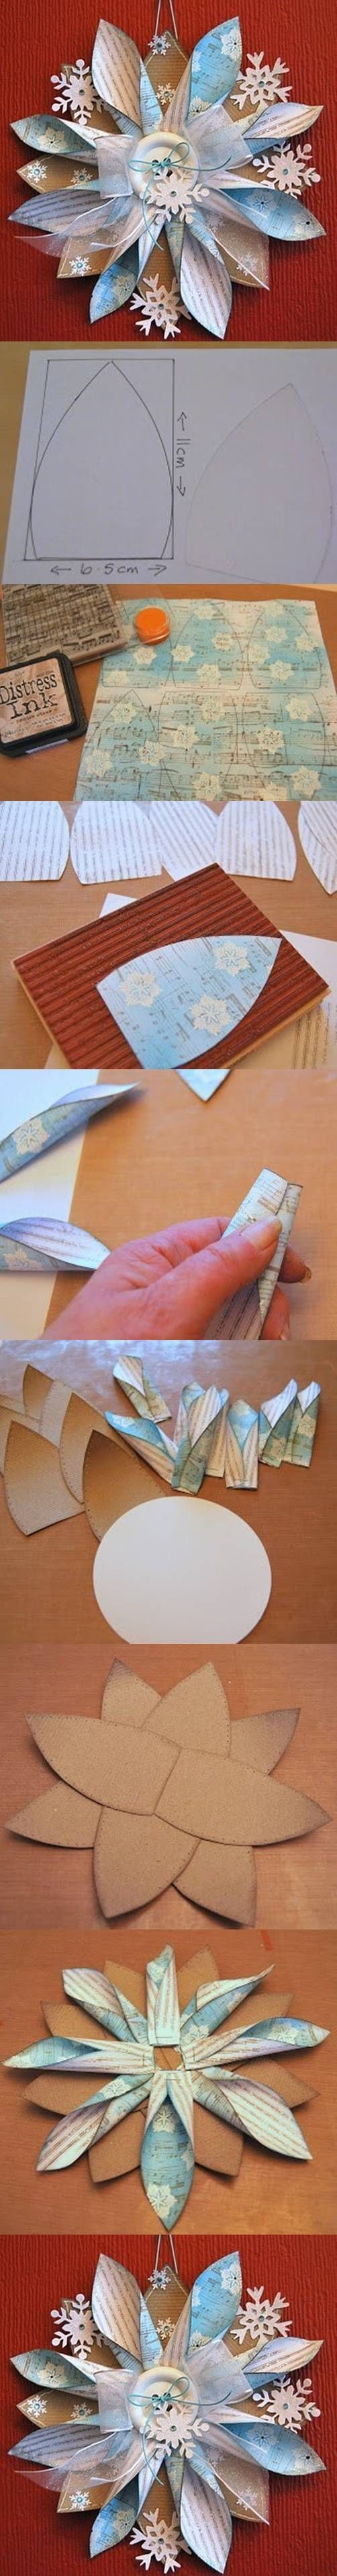 DIY Paper Ornaments tutorial origami christmas crafts